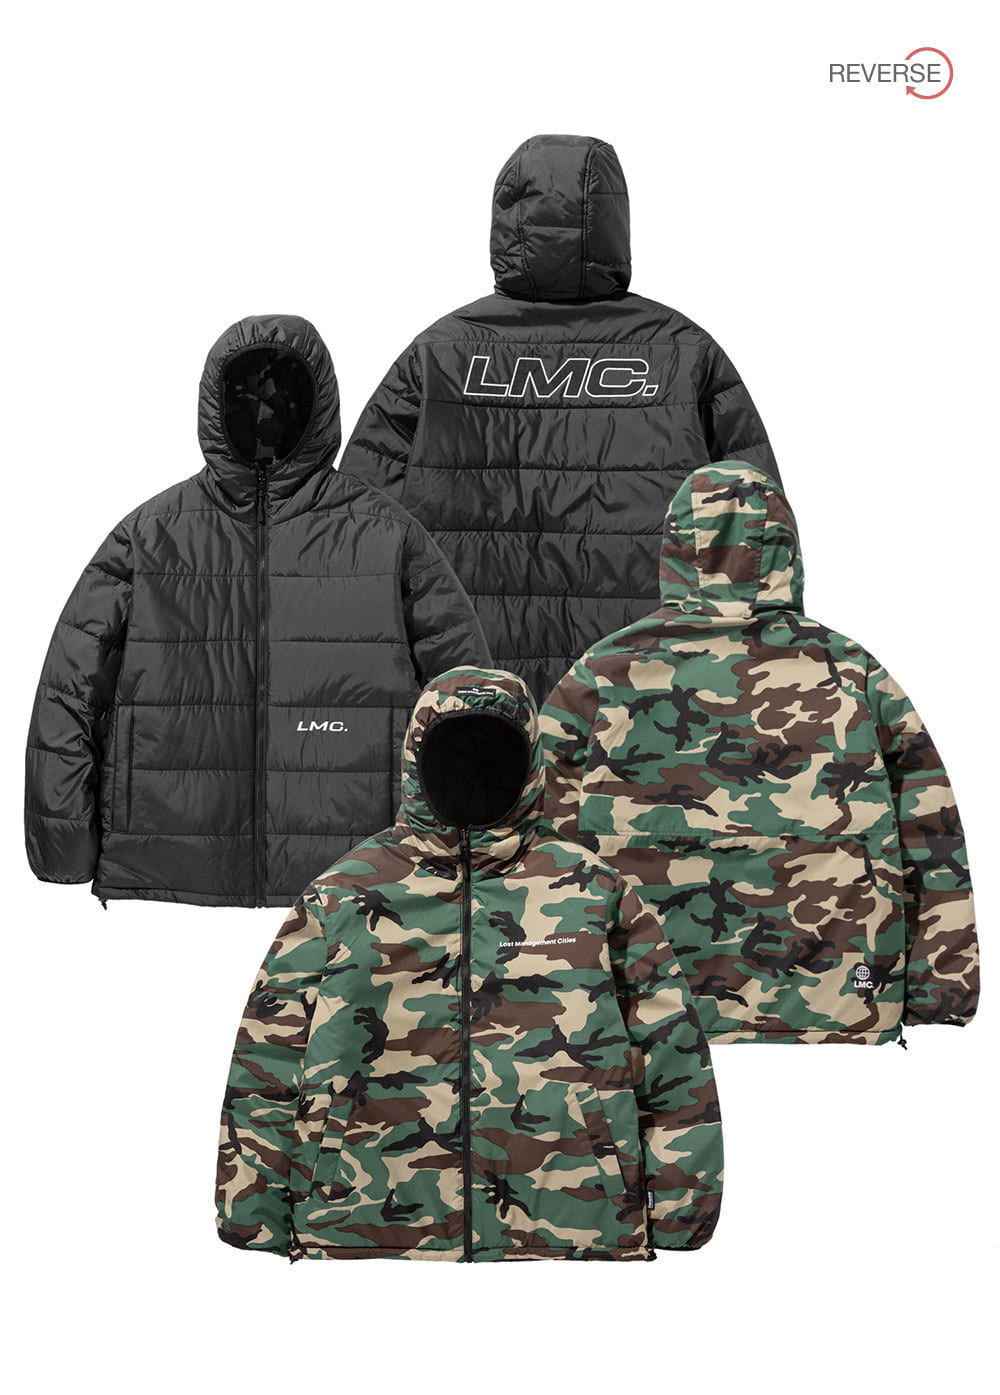 LMC THINSULATE REVERSIBLE HOODED JACKET bk/ca